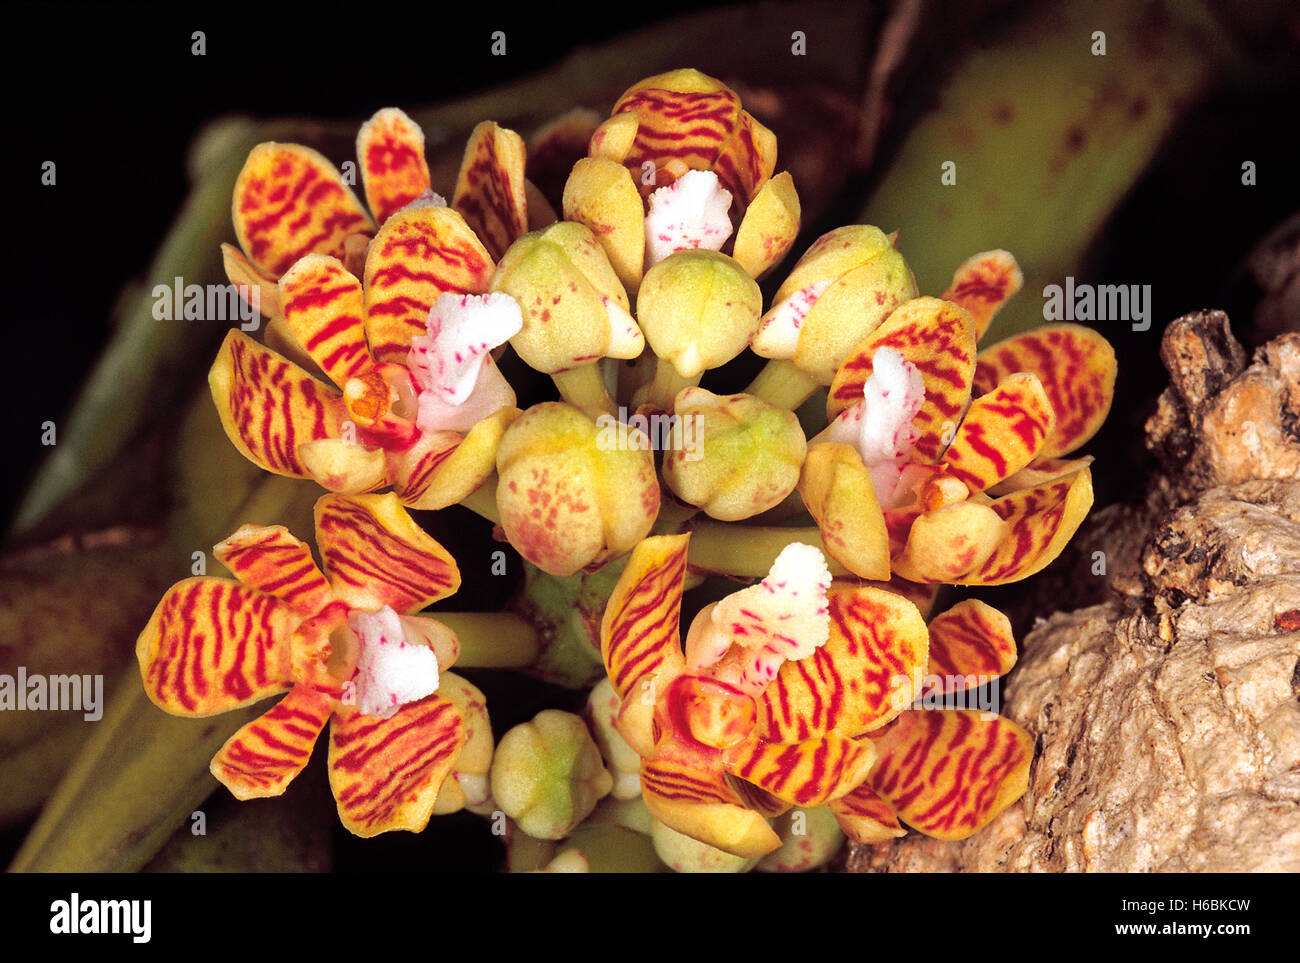 Acampe sp. Order: Orchidaceae. An epiphytic orchid. The flowers are small when compared to the size of the plant. - Stock Image